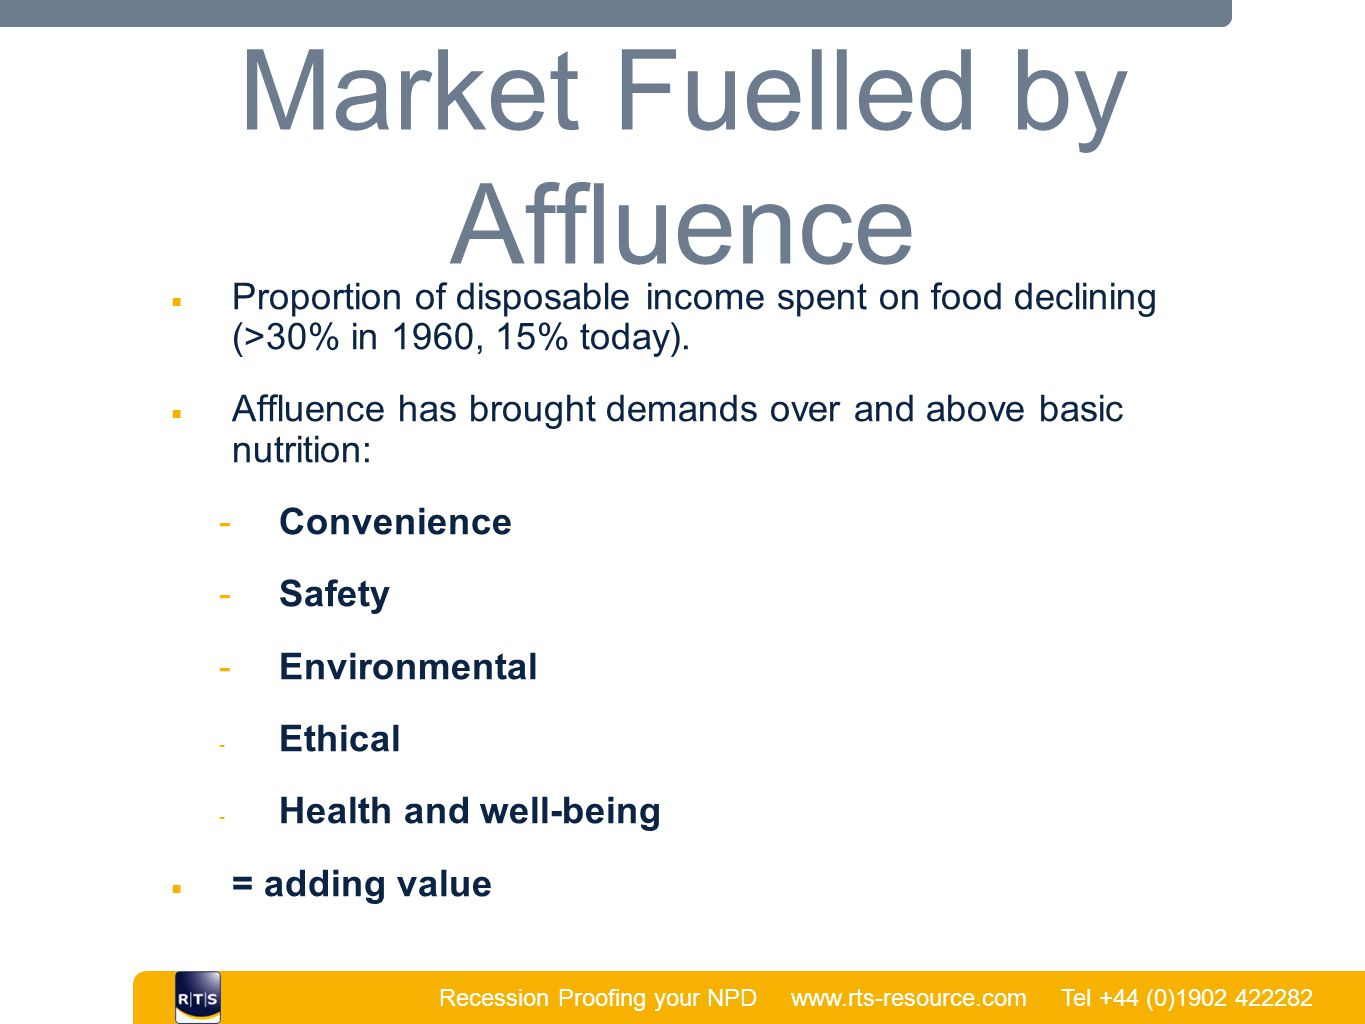 Recession Proofing your NPD www.rts-resource.com Tel +44 (0)1902 422282 | Market Fuelled by Affluence ■ Proportion of disposable income spent on food declining (>30% in 1960, 15% today).